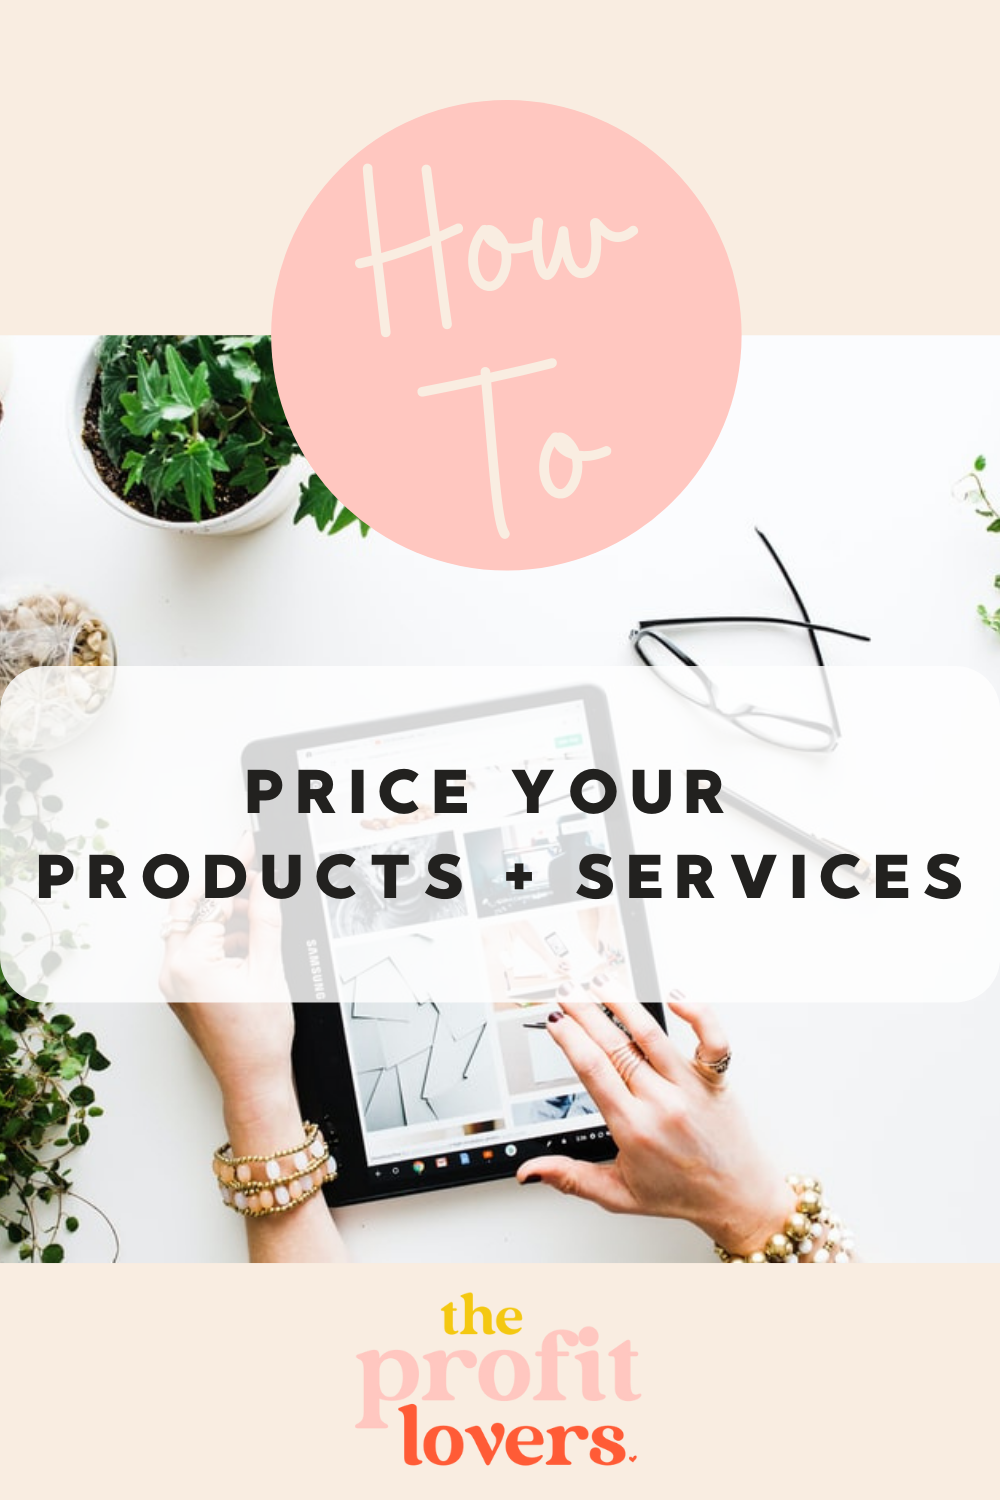 HOW TO PRICE YOUR PRODUCTS + SERVICES